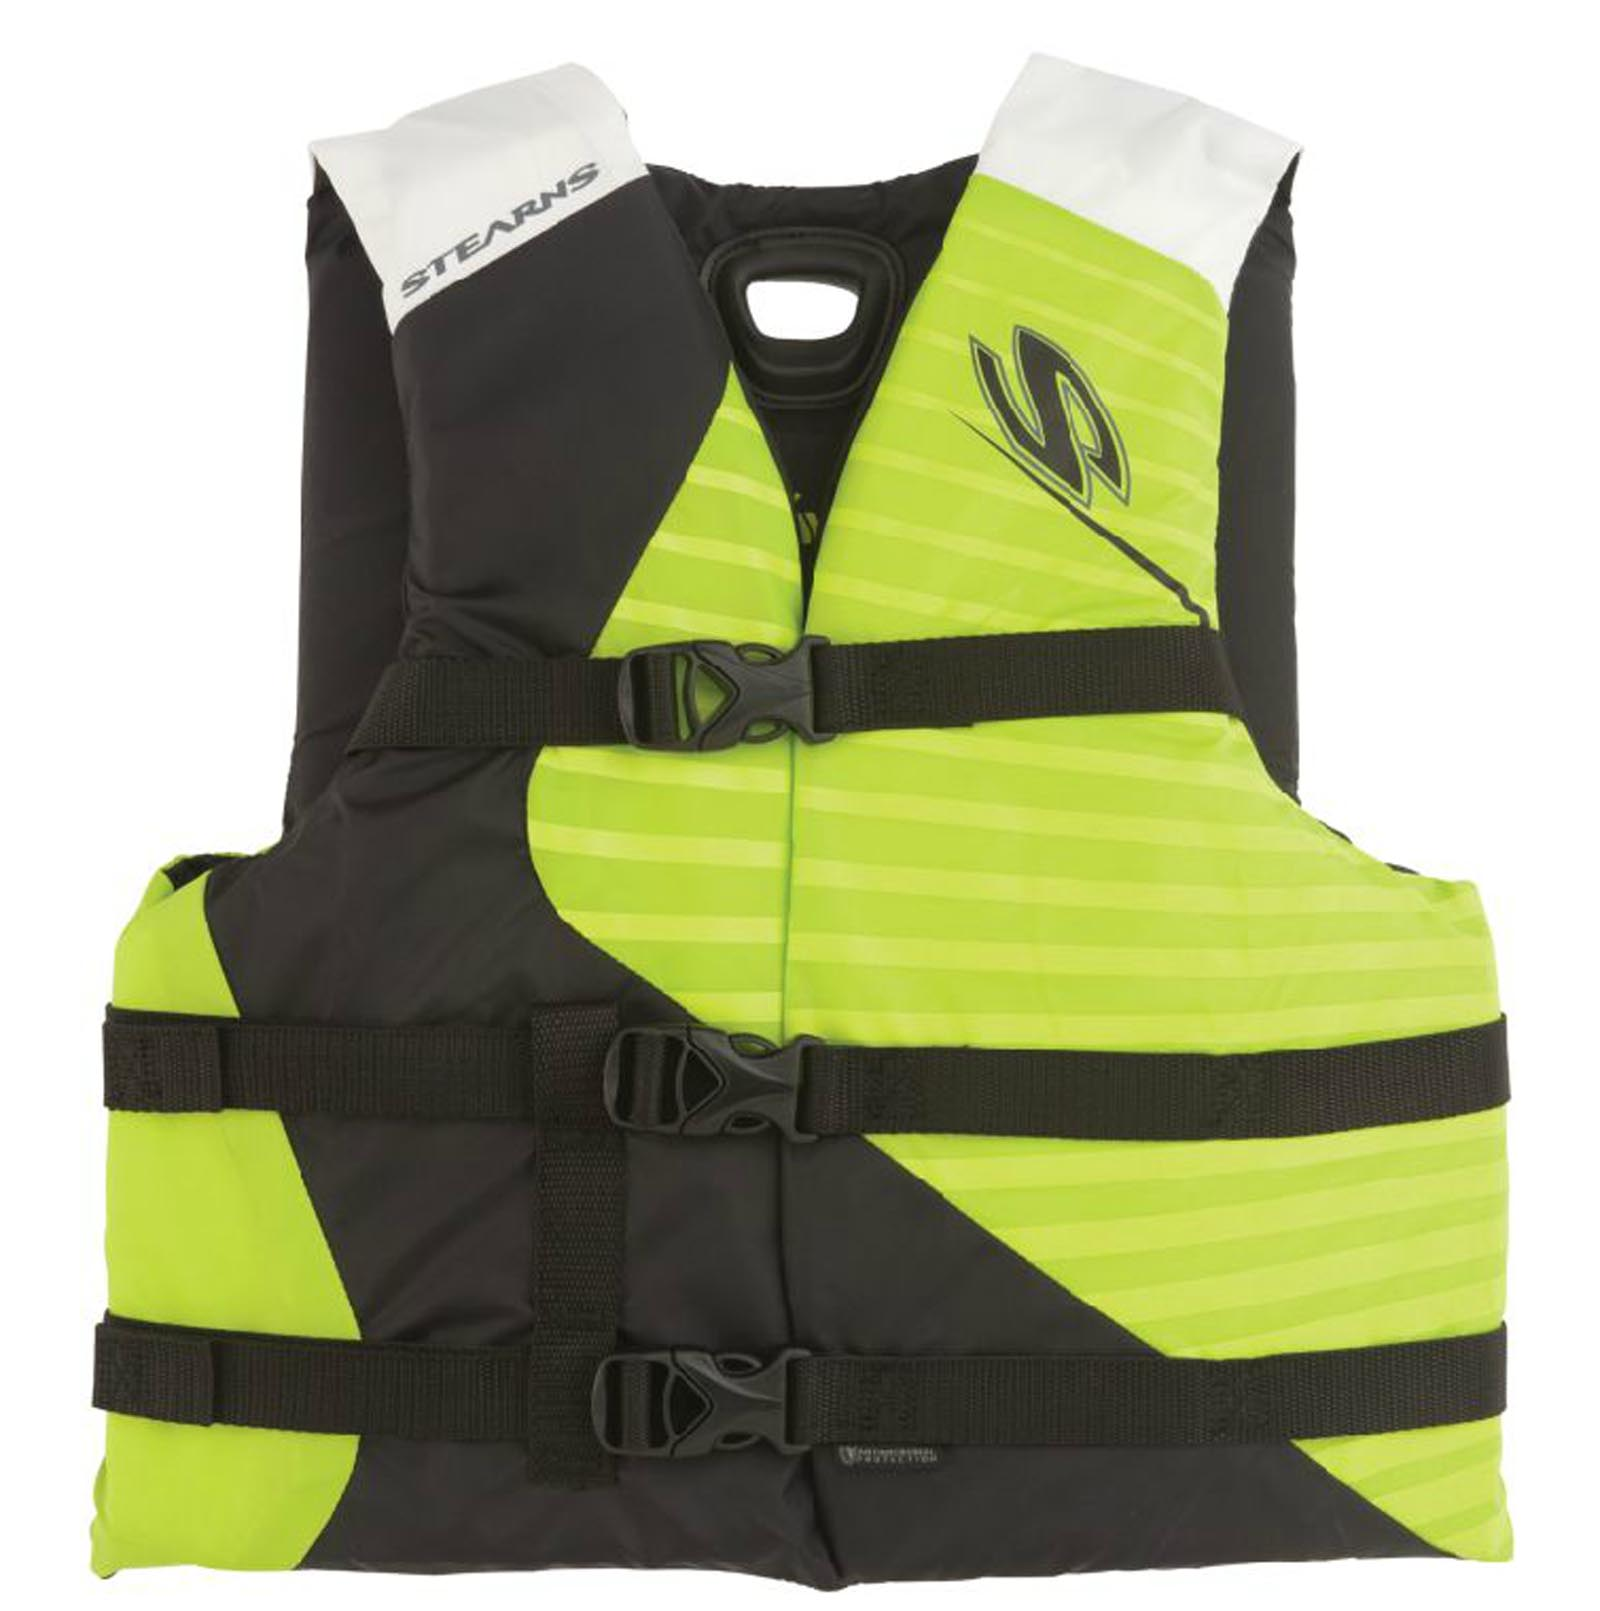 Coleman Stearns Boys Youth Antimicrobial Life Jacket | 50-90 lbs